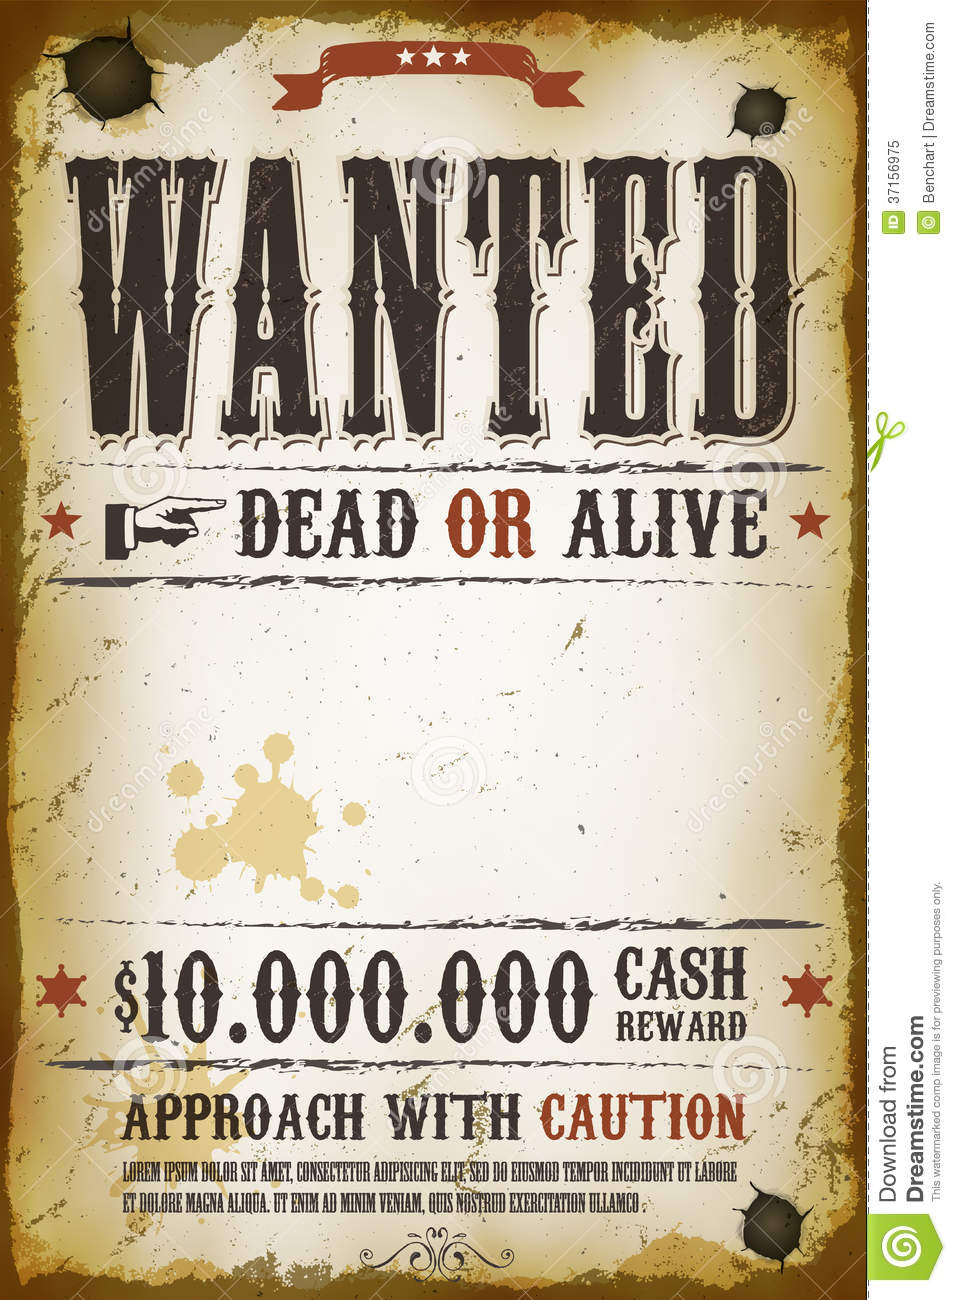 Wanted Vintage Western Poster Stock Vector - Illustration of brown ...